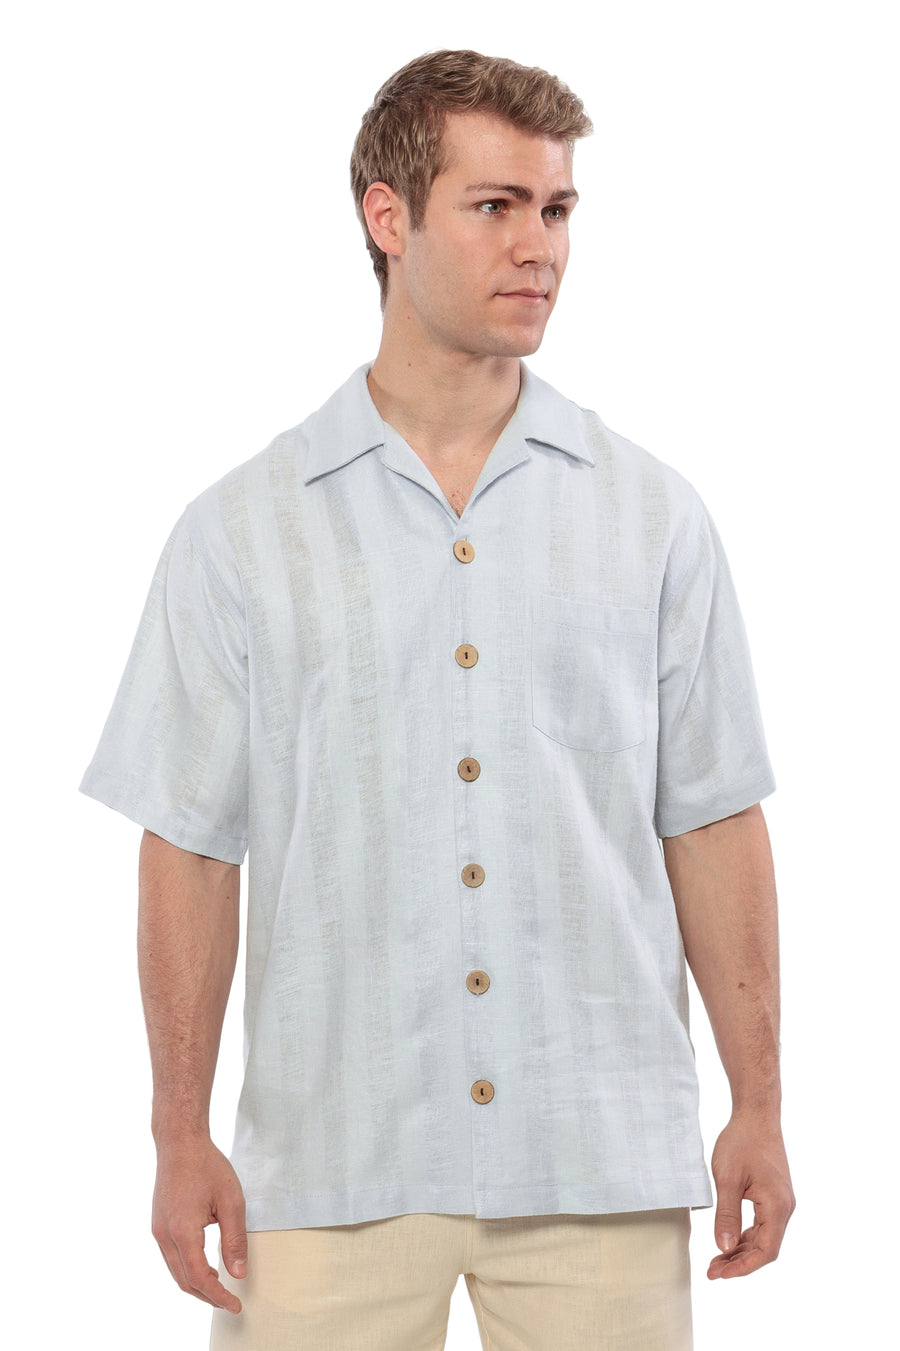 Deryn - Men's Linen Camp Shirt - TexereSilk